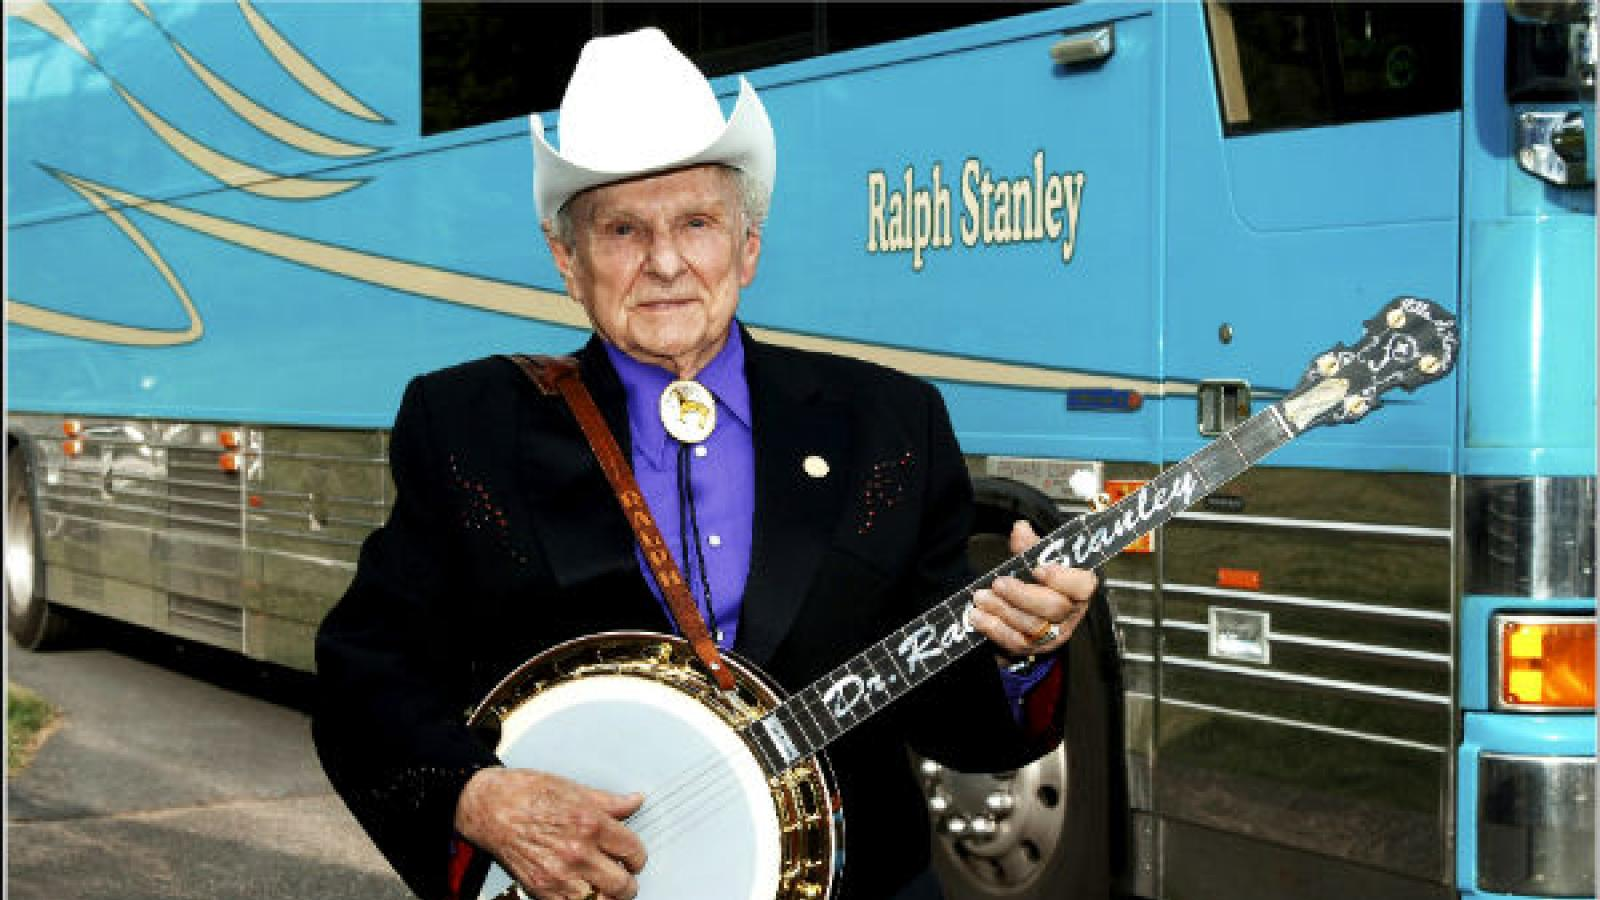 Ralph Stanley, bluegrass musician standing in front of his band's tour bus